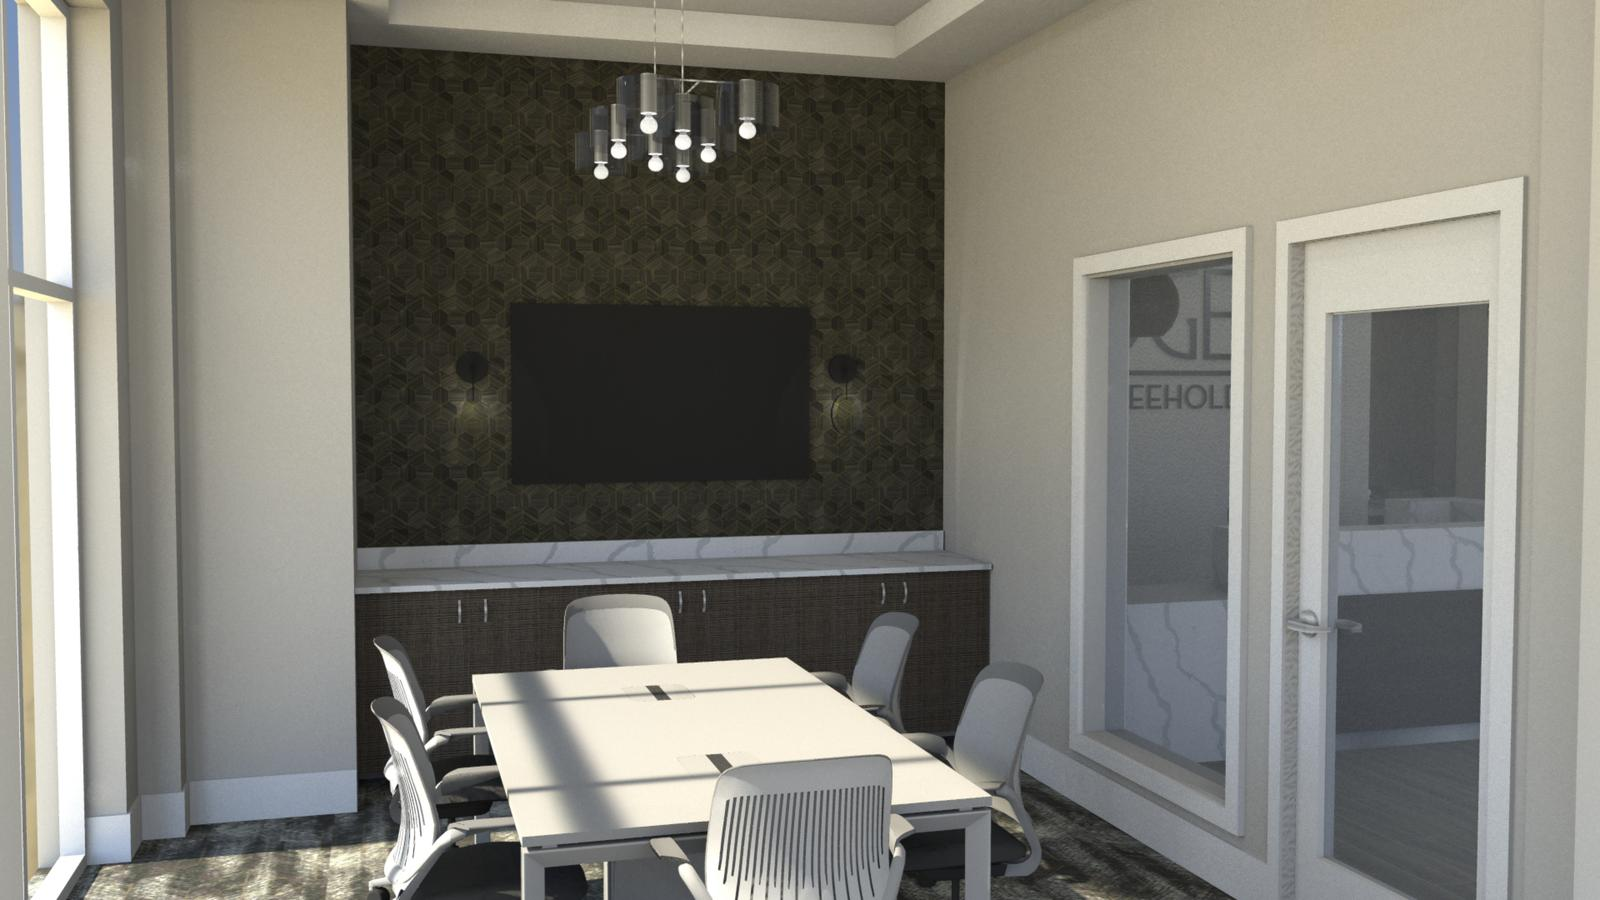 04Conference Room